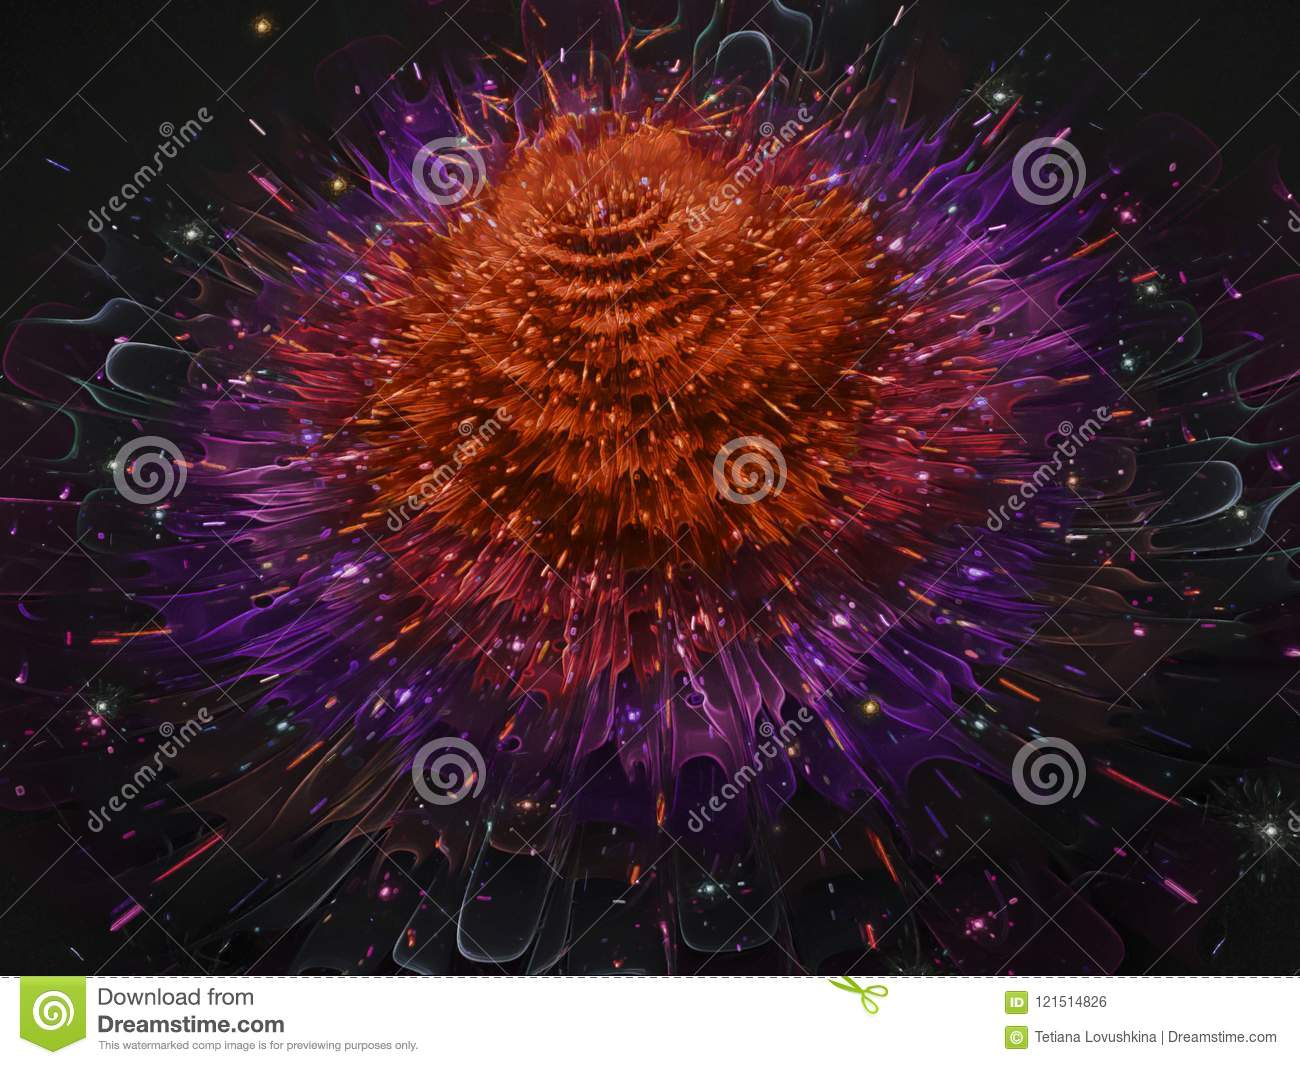 Fractal abstract futuristic, flower elegant design, bloom ornament graphic magic digital render design decorative